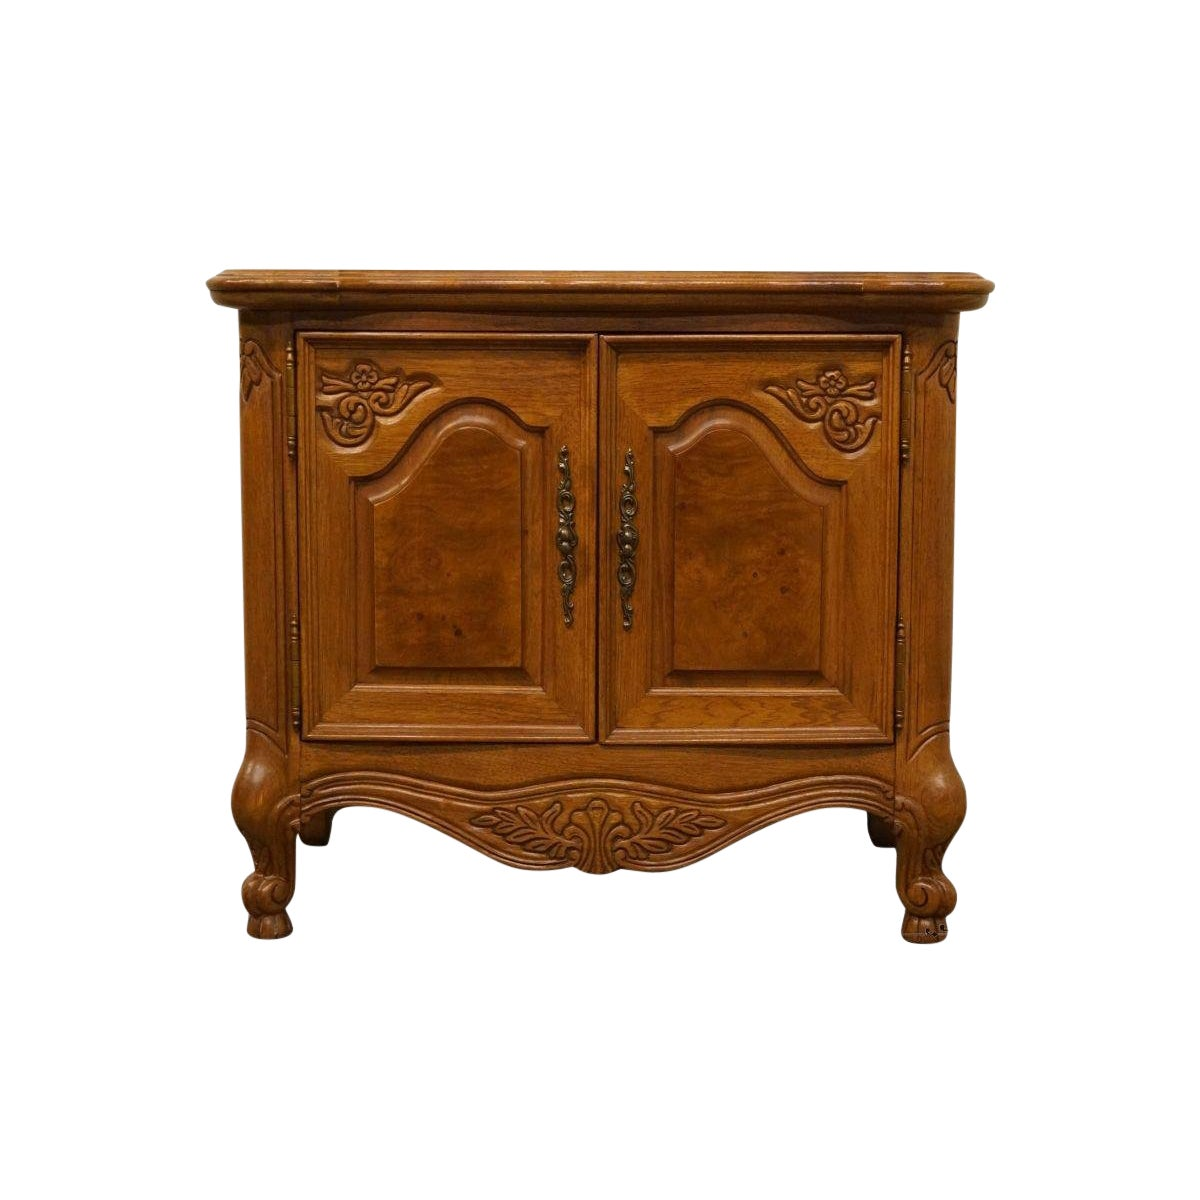 Lexington Furniture Chateau Latour Collection French Country 30